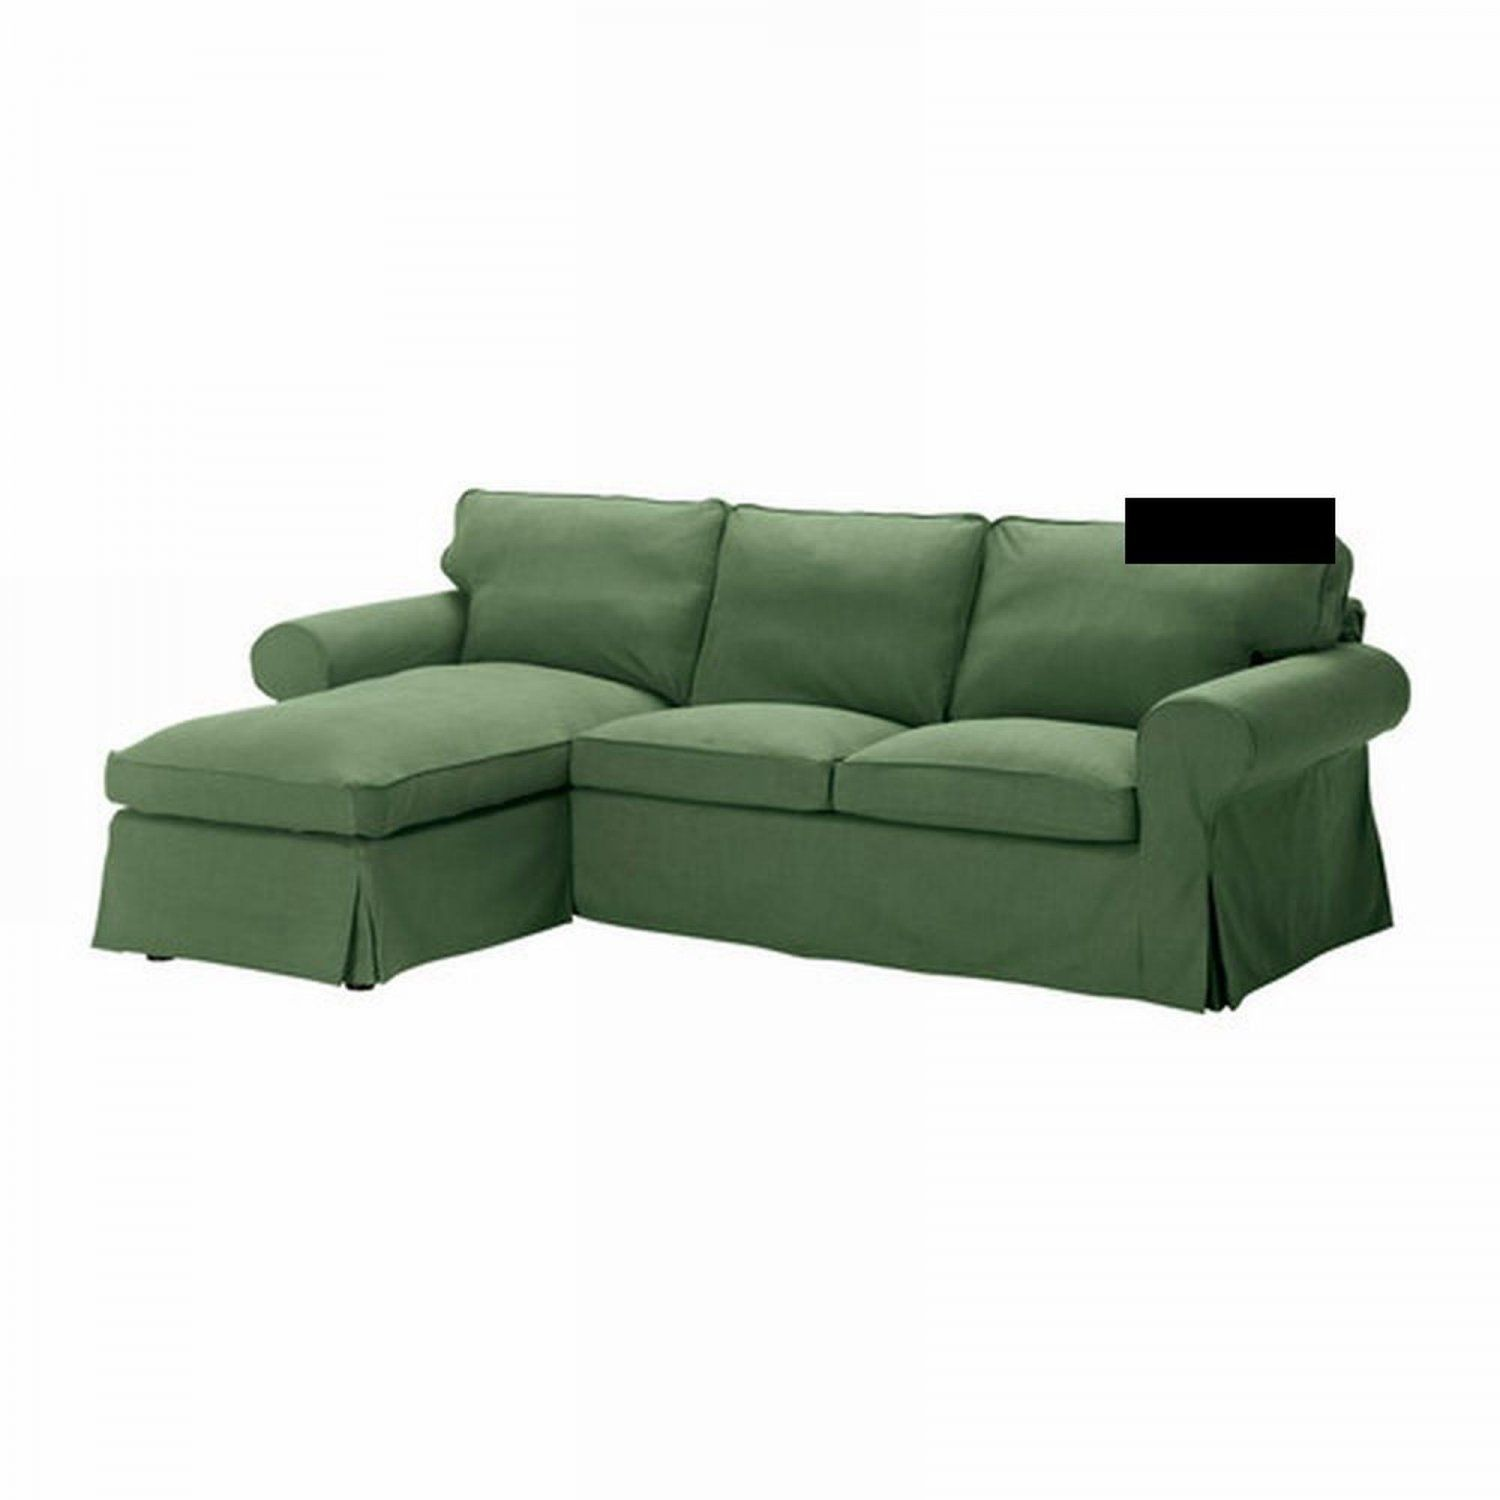 IKEA EKTORP 2 Seat Loveseat sofa with Chaise COVER Slipcover